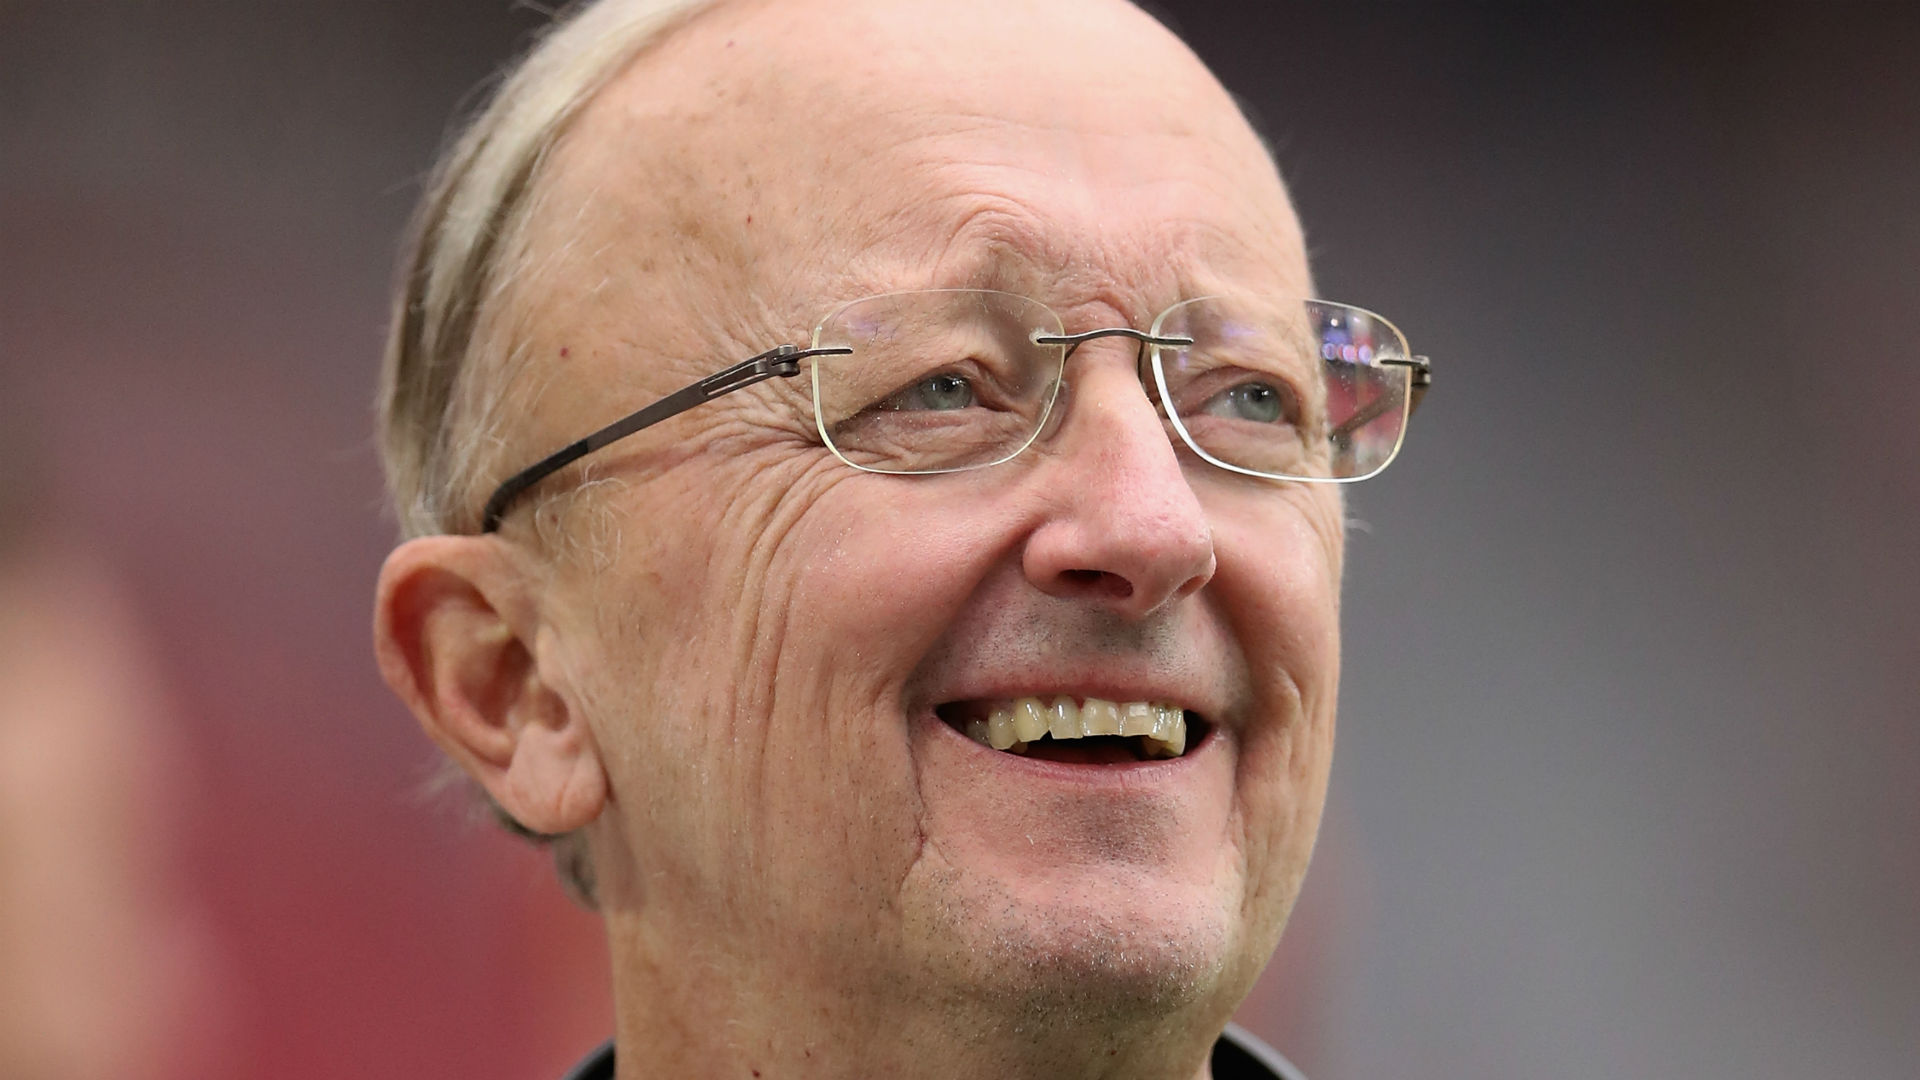 ESPN's John Clayton Dropped An All-Time Great Tweet After Being Laid Off